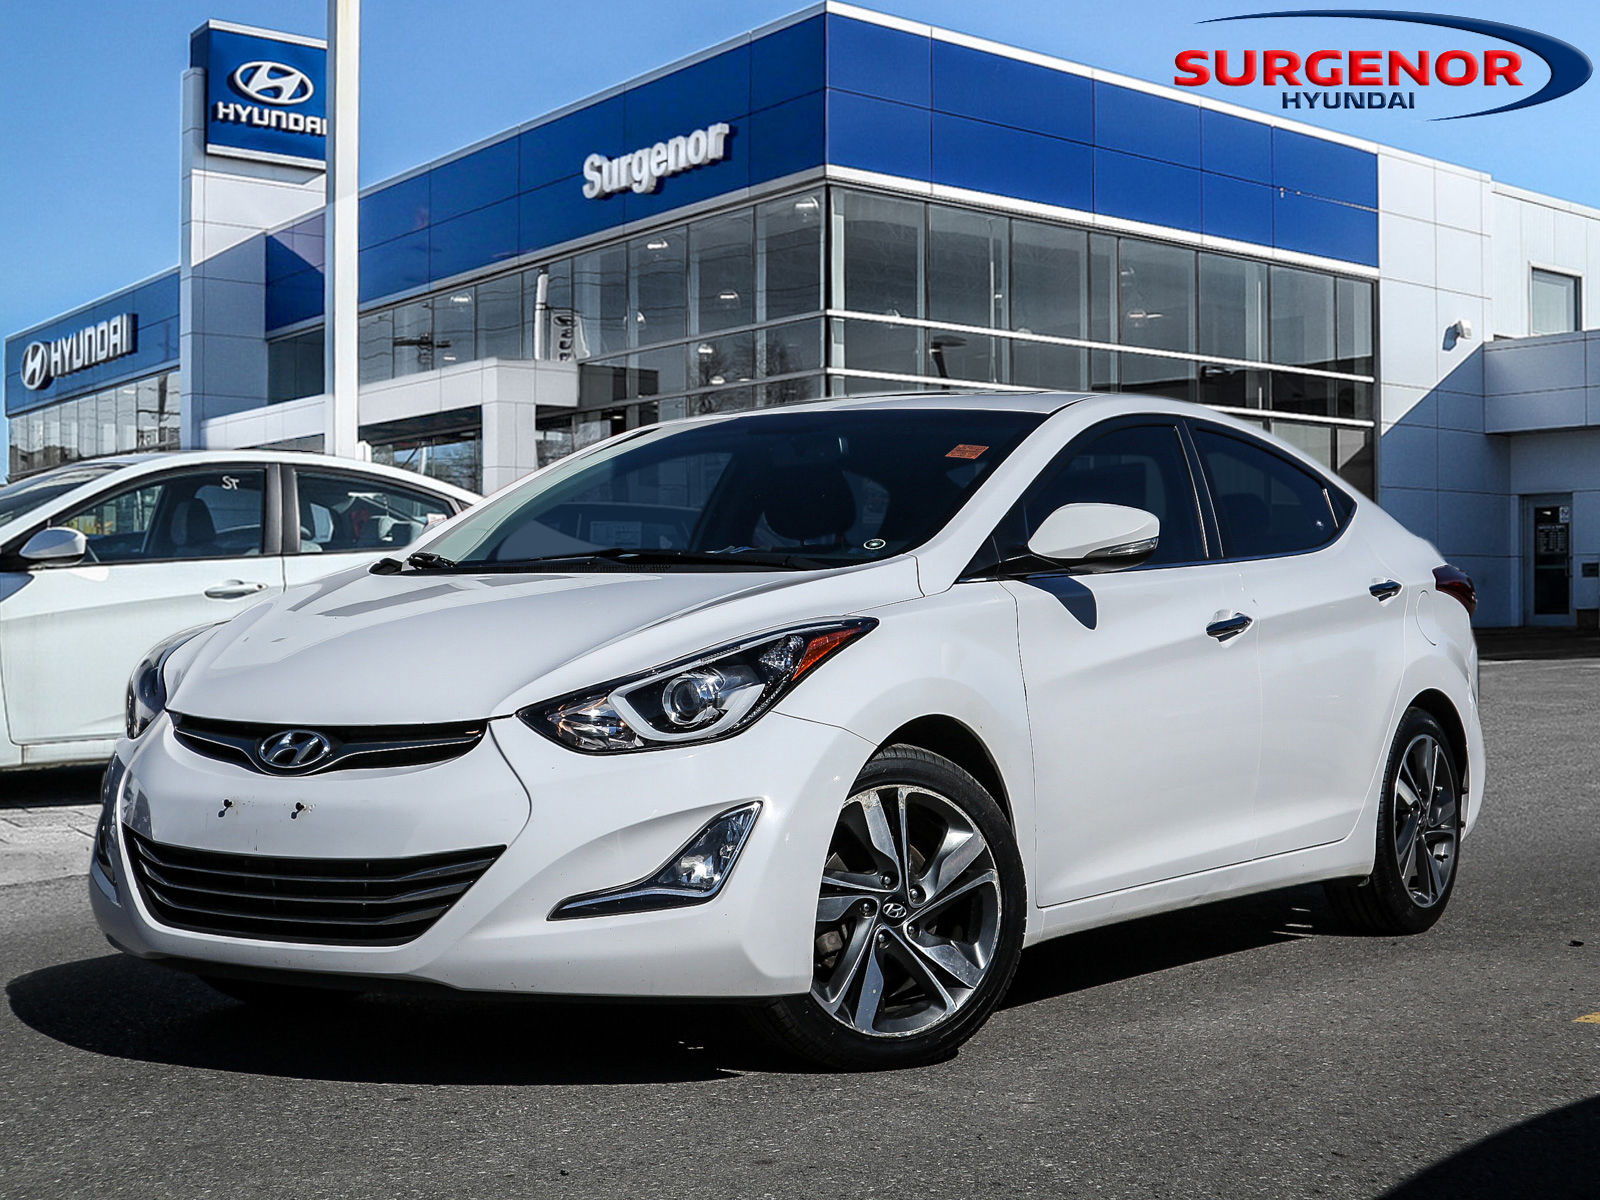 carfinder in elantra sale title lot of copart white en ks auctions hyundai on wichita left online view for auto electronic se cert